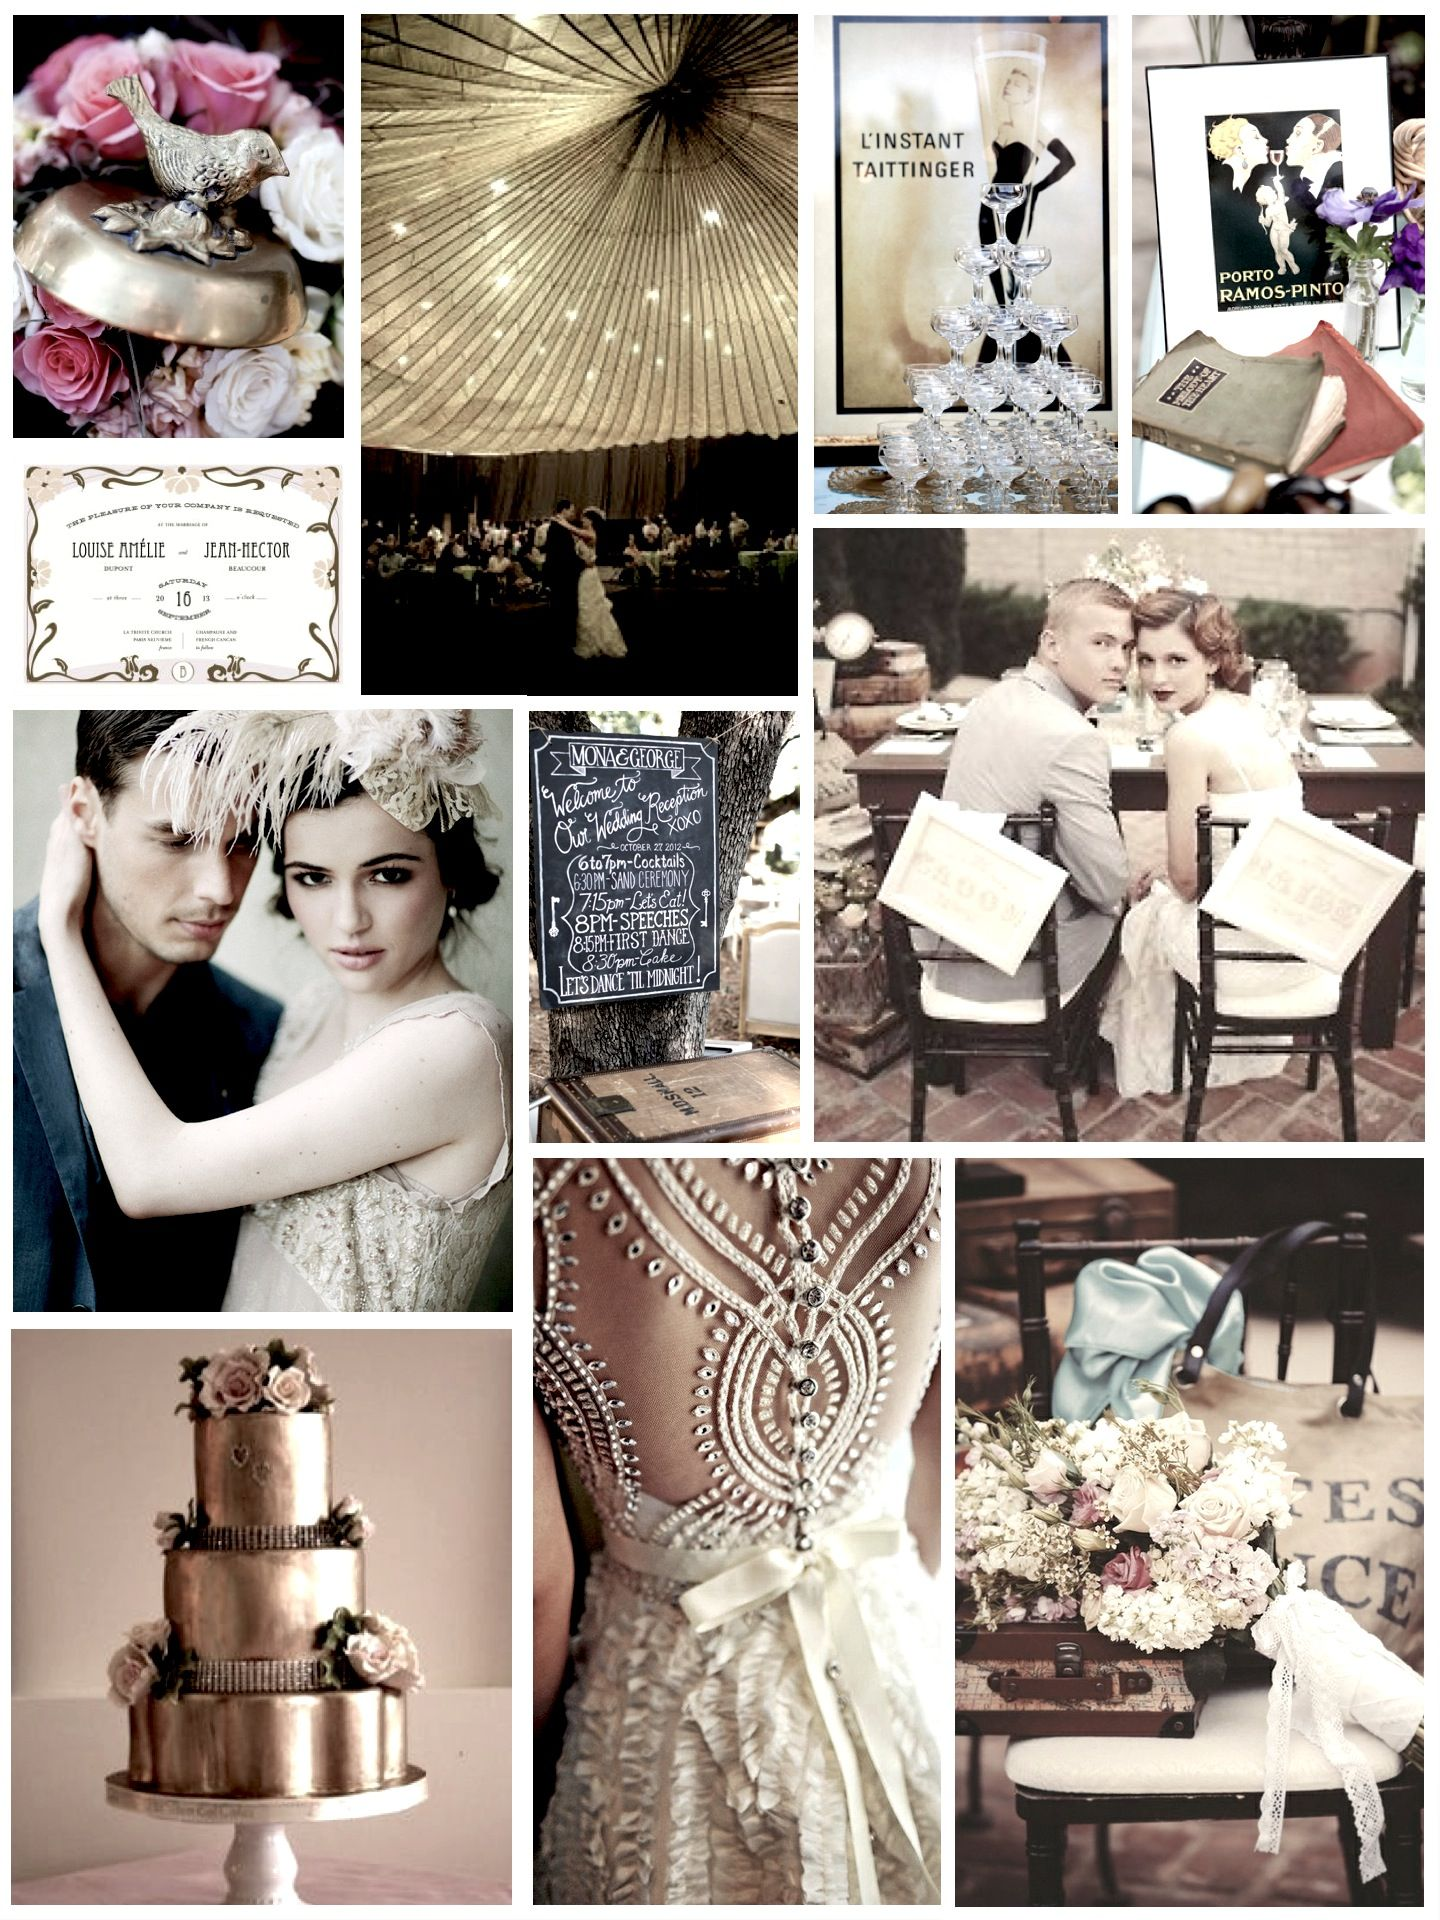 Pin By Mariejose On Moodboards 1920s Wedding Theme 1920 Wedding Theme 1920s Wedding